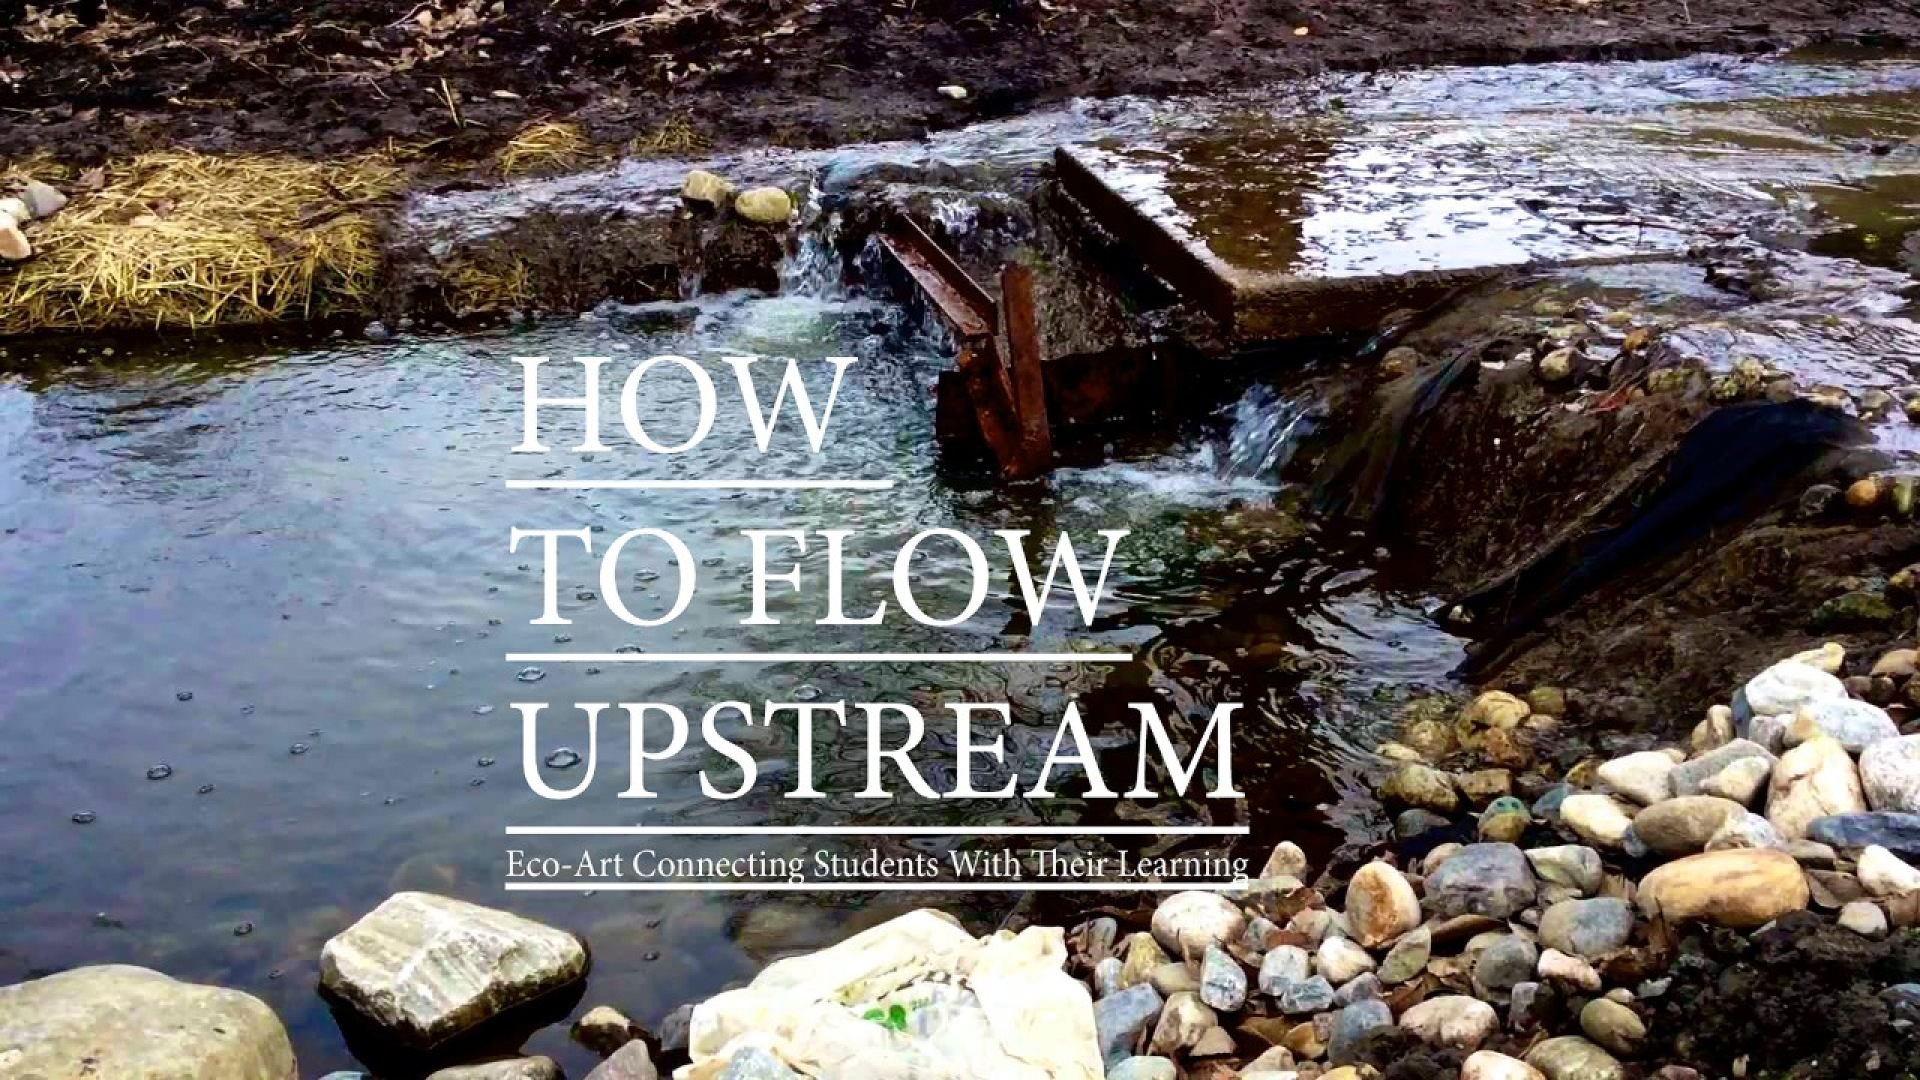 Eco-Art: How to Flow Upstream